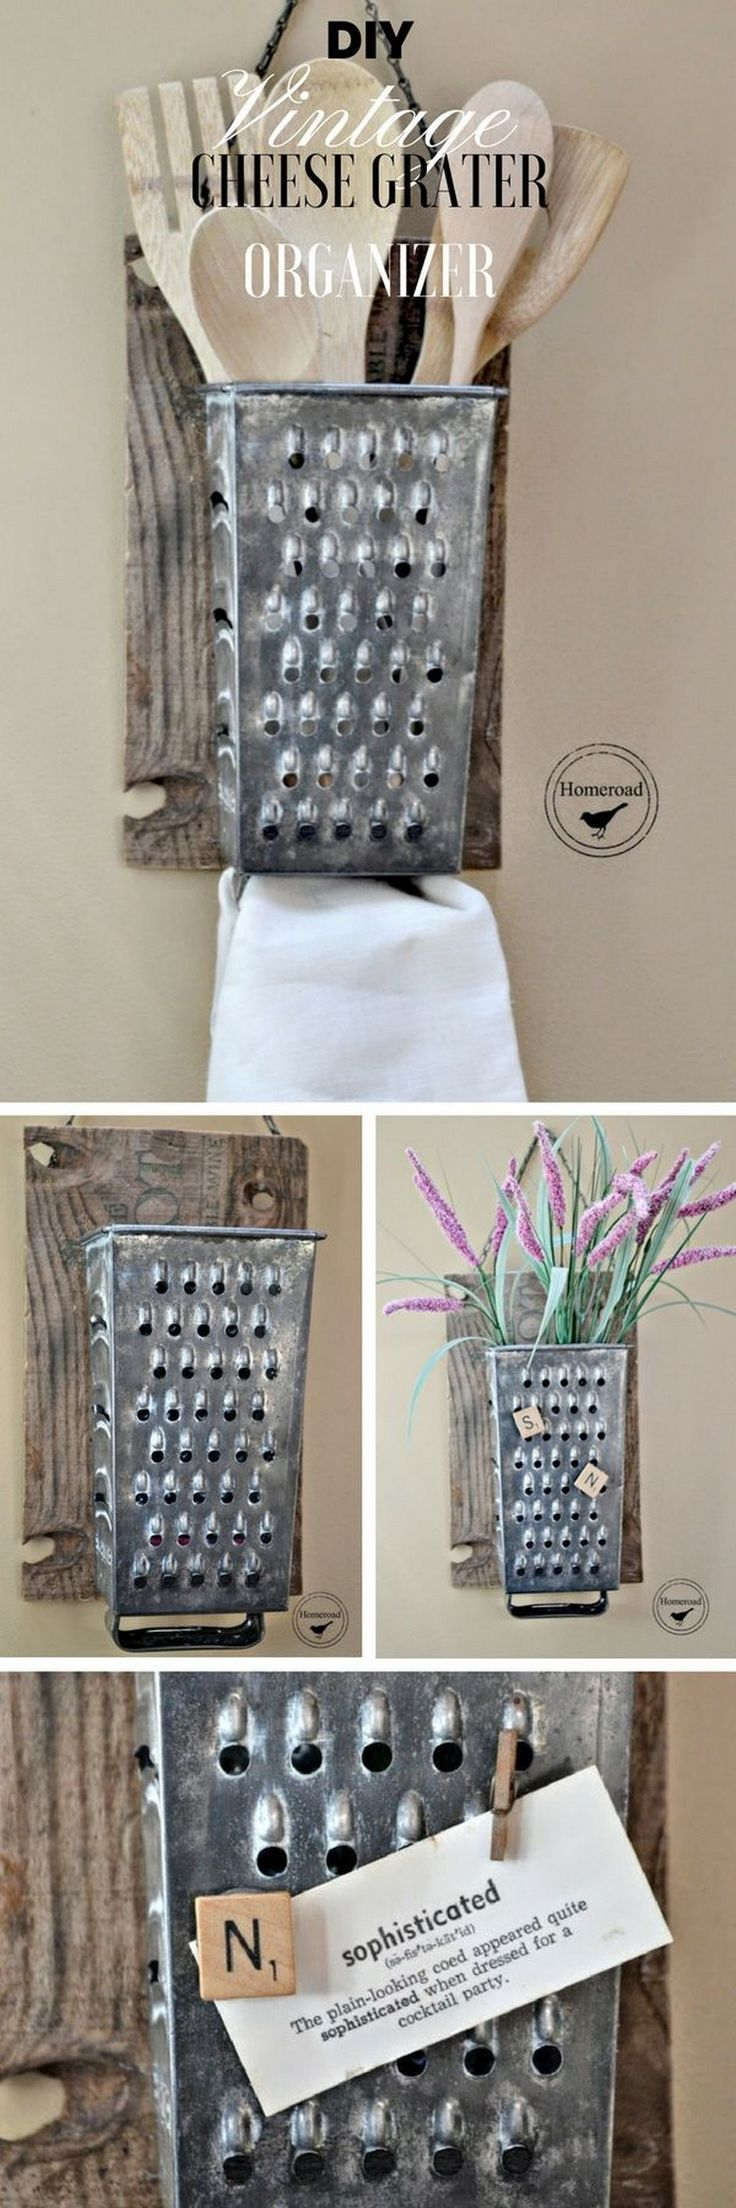 Best 25 rustic home decorating ideas on pinterest barnwood ideas painted mason jars and - Home decor ideas diy ...